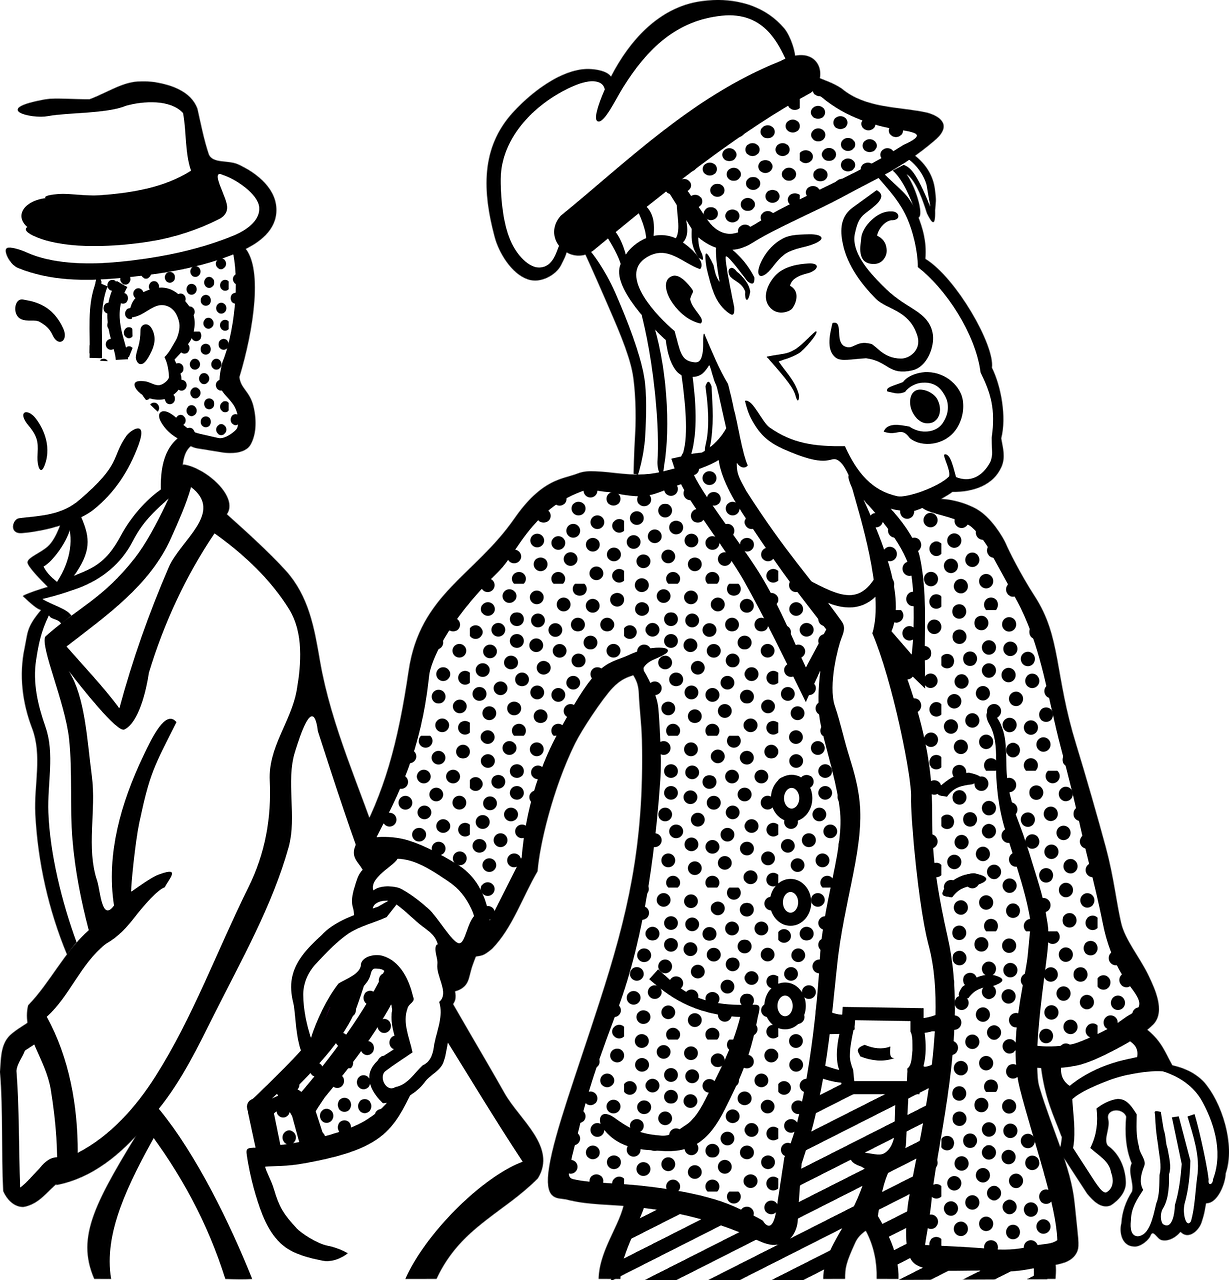 a drawing of a thief taking a wallet from another man's pocket